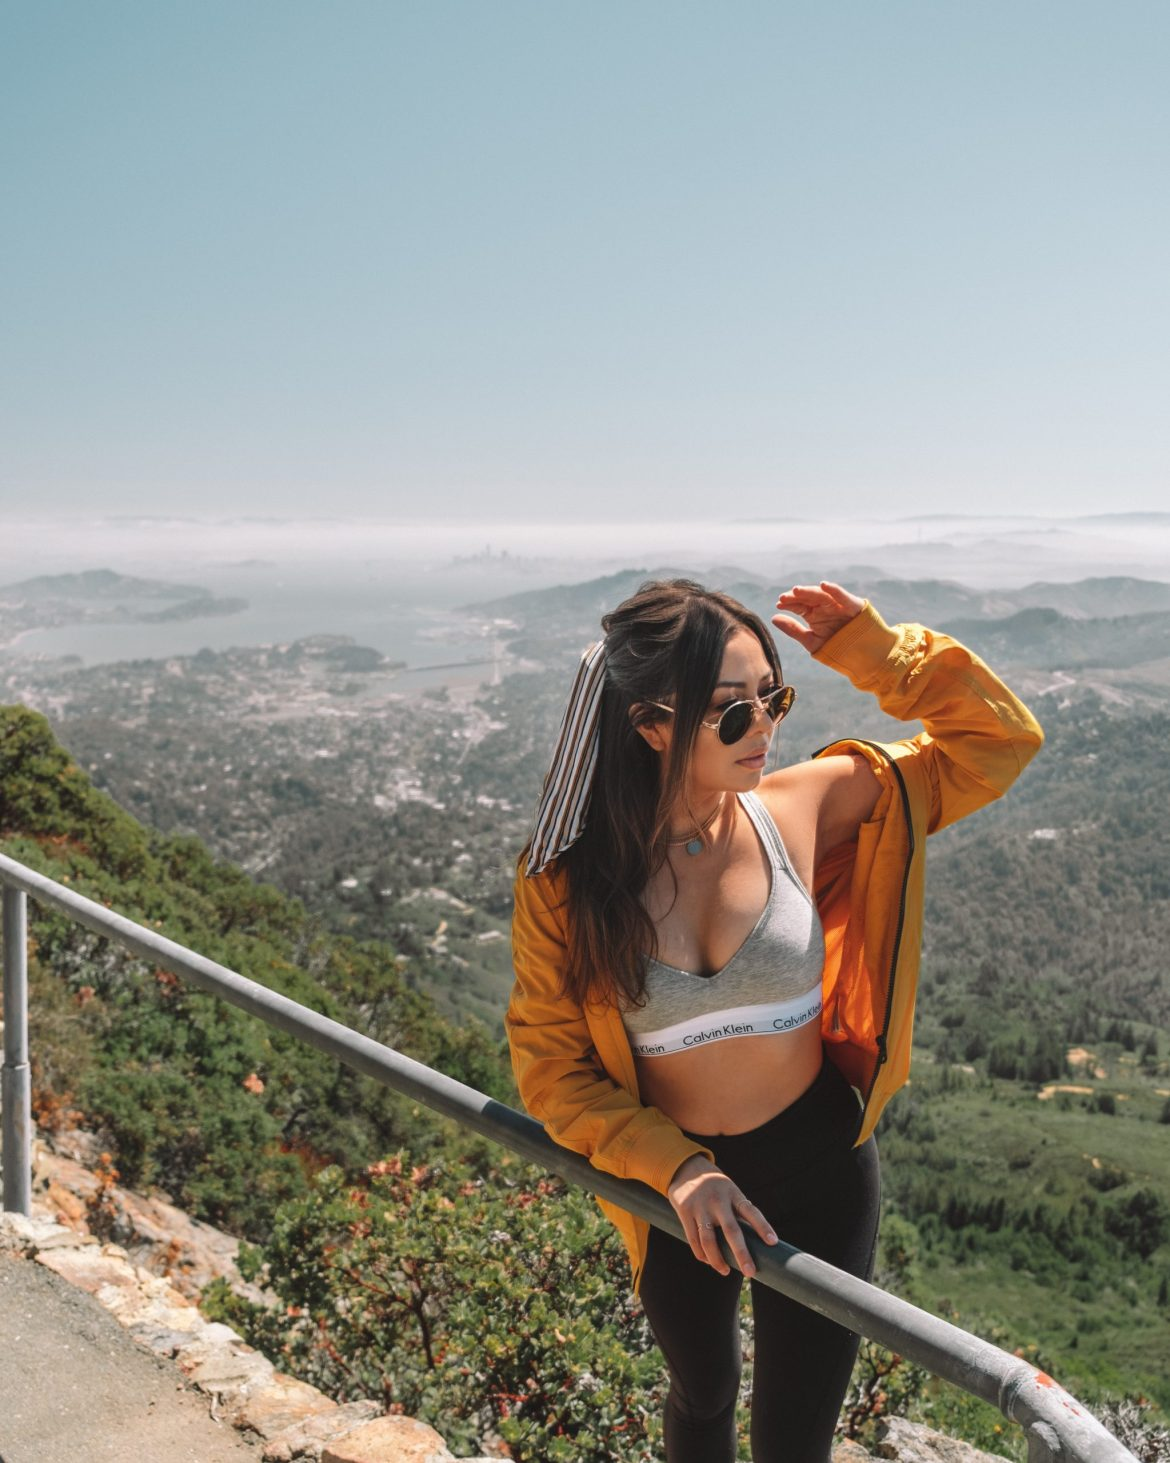 6 Epic Day Trips From San Francisco - Mount Tamalpais, San Francisco day trips